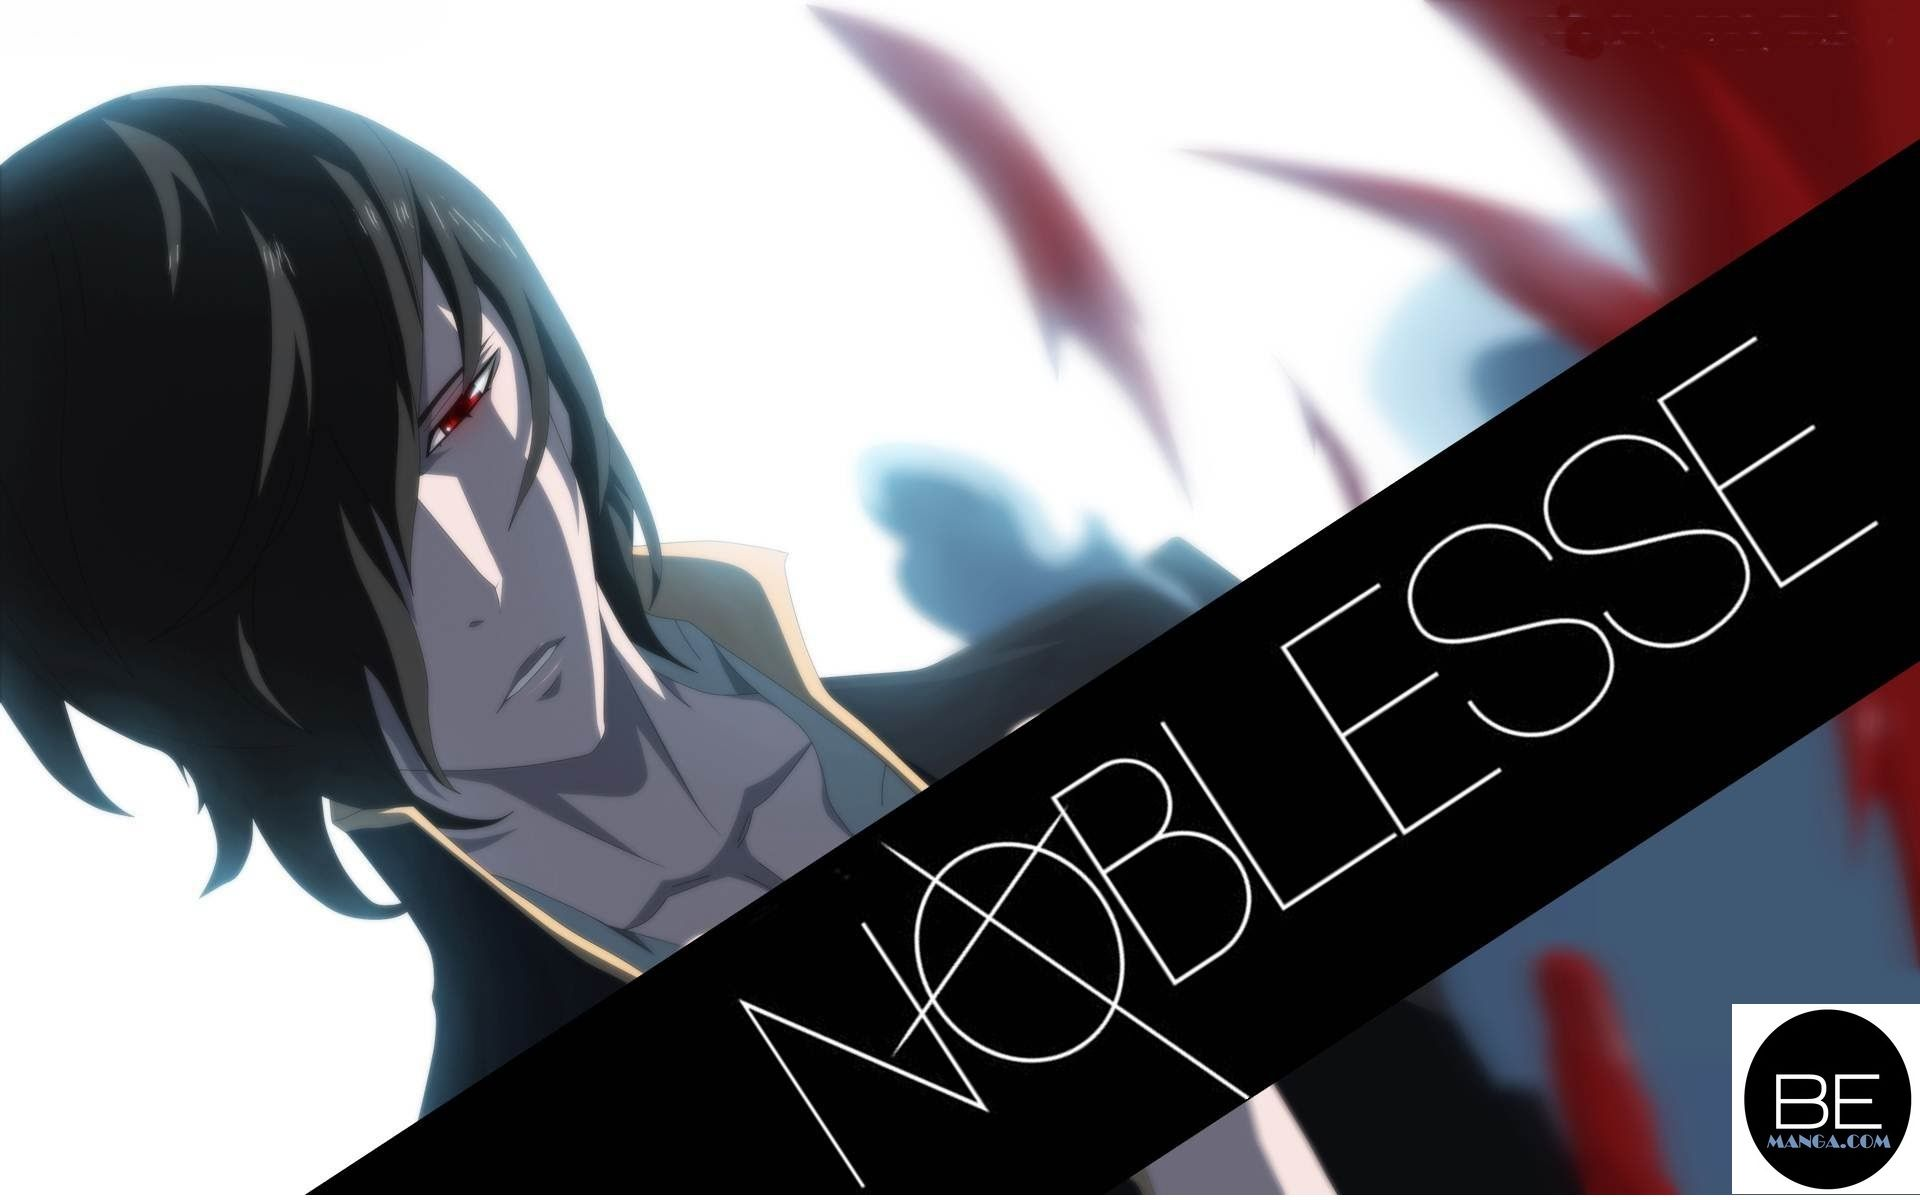 Noblesse For 820 years he had slumbered with no